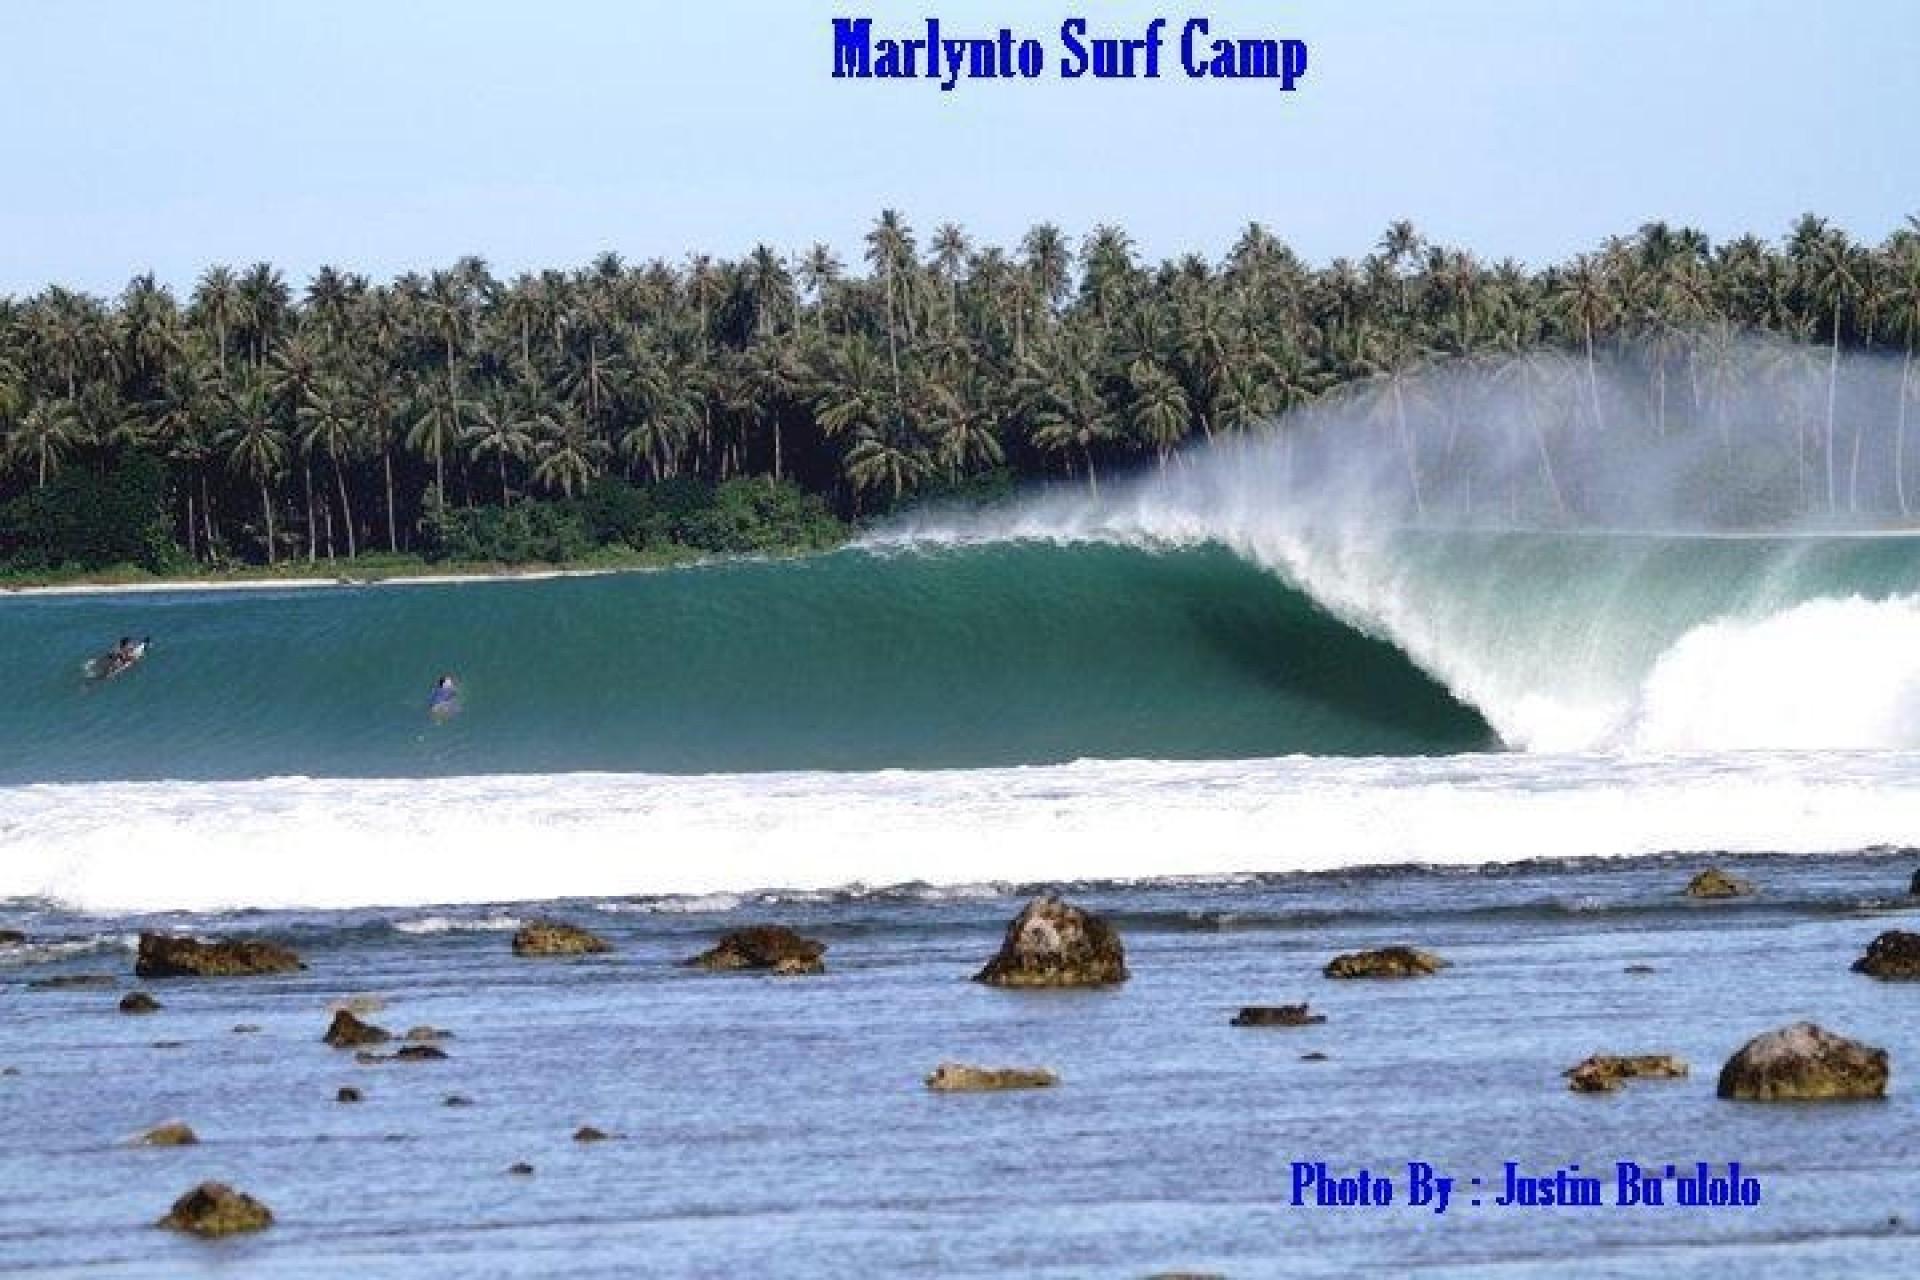 Marlynto Surf Camp's photo of Lagundri Bay - The Point